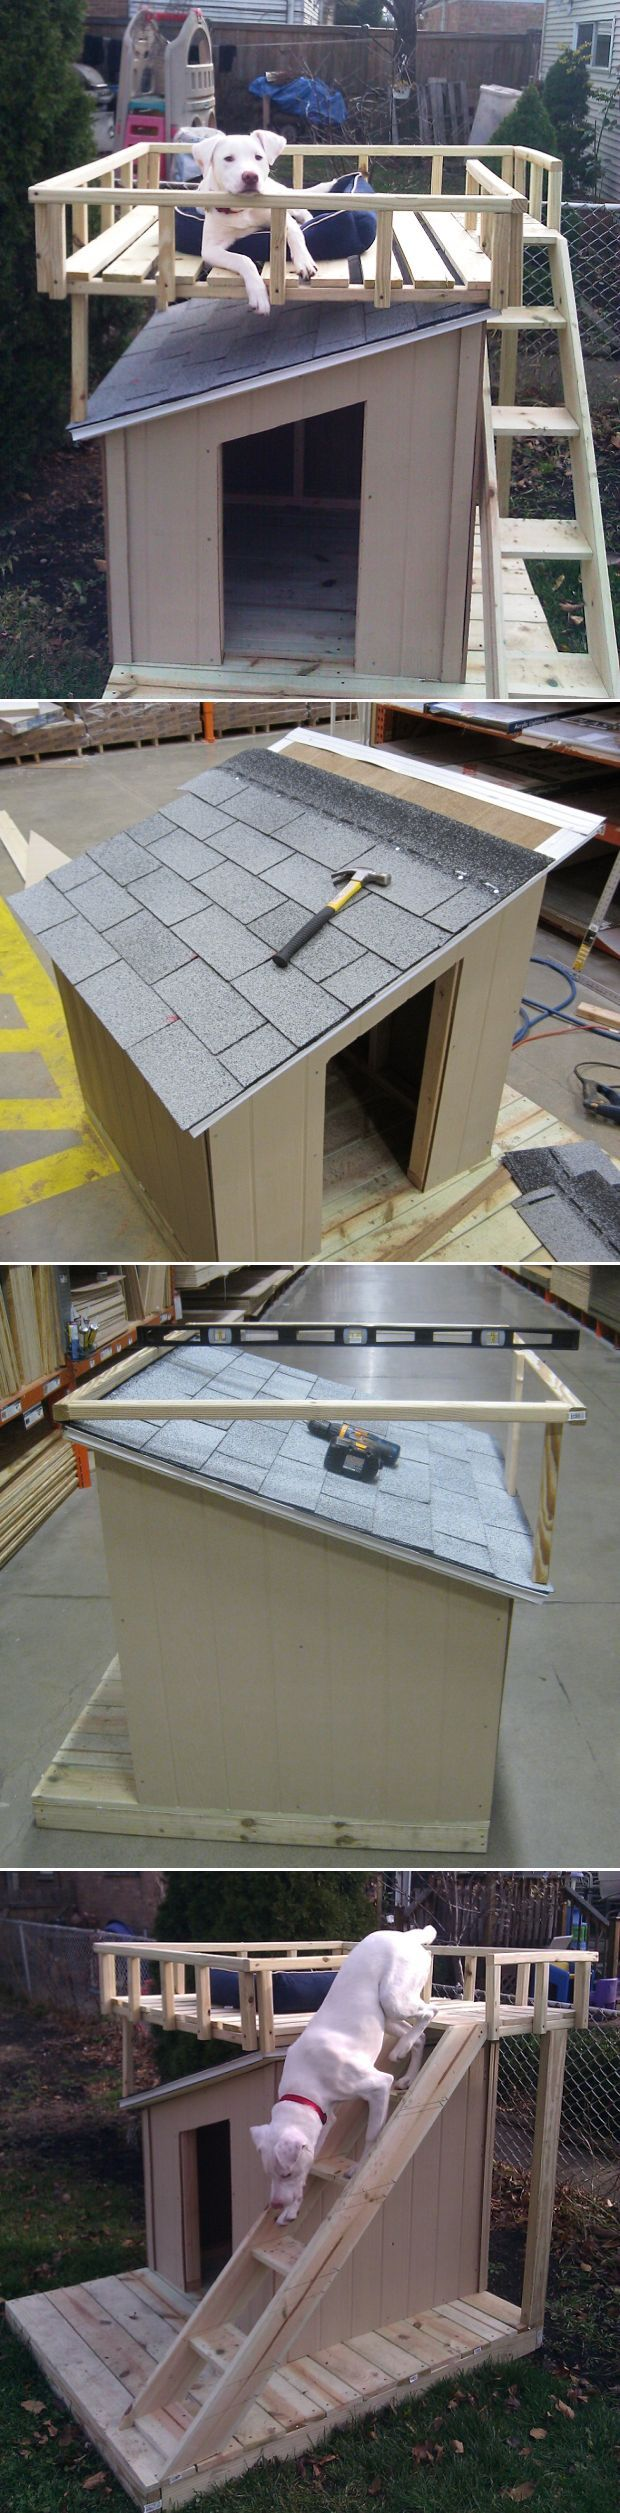 Awesome DIY Dog HousesSee full instructions on ... - Inspiring picture on Joyzz.com